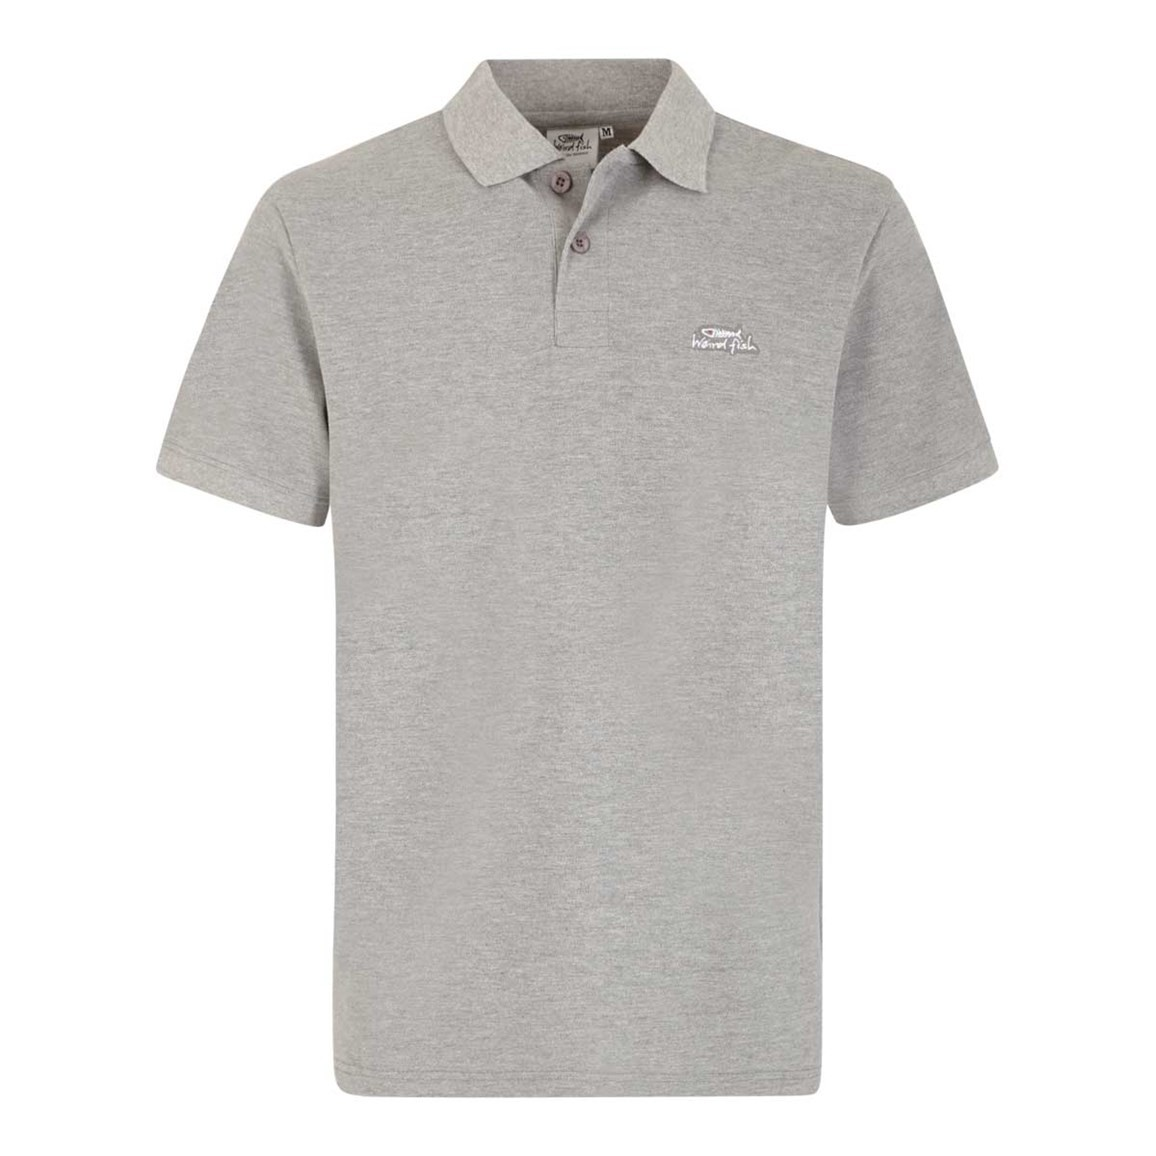 Saltash Rib Collar Pique Polo Shirt Grey